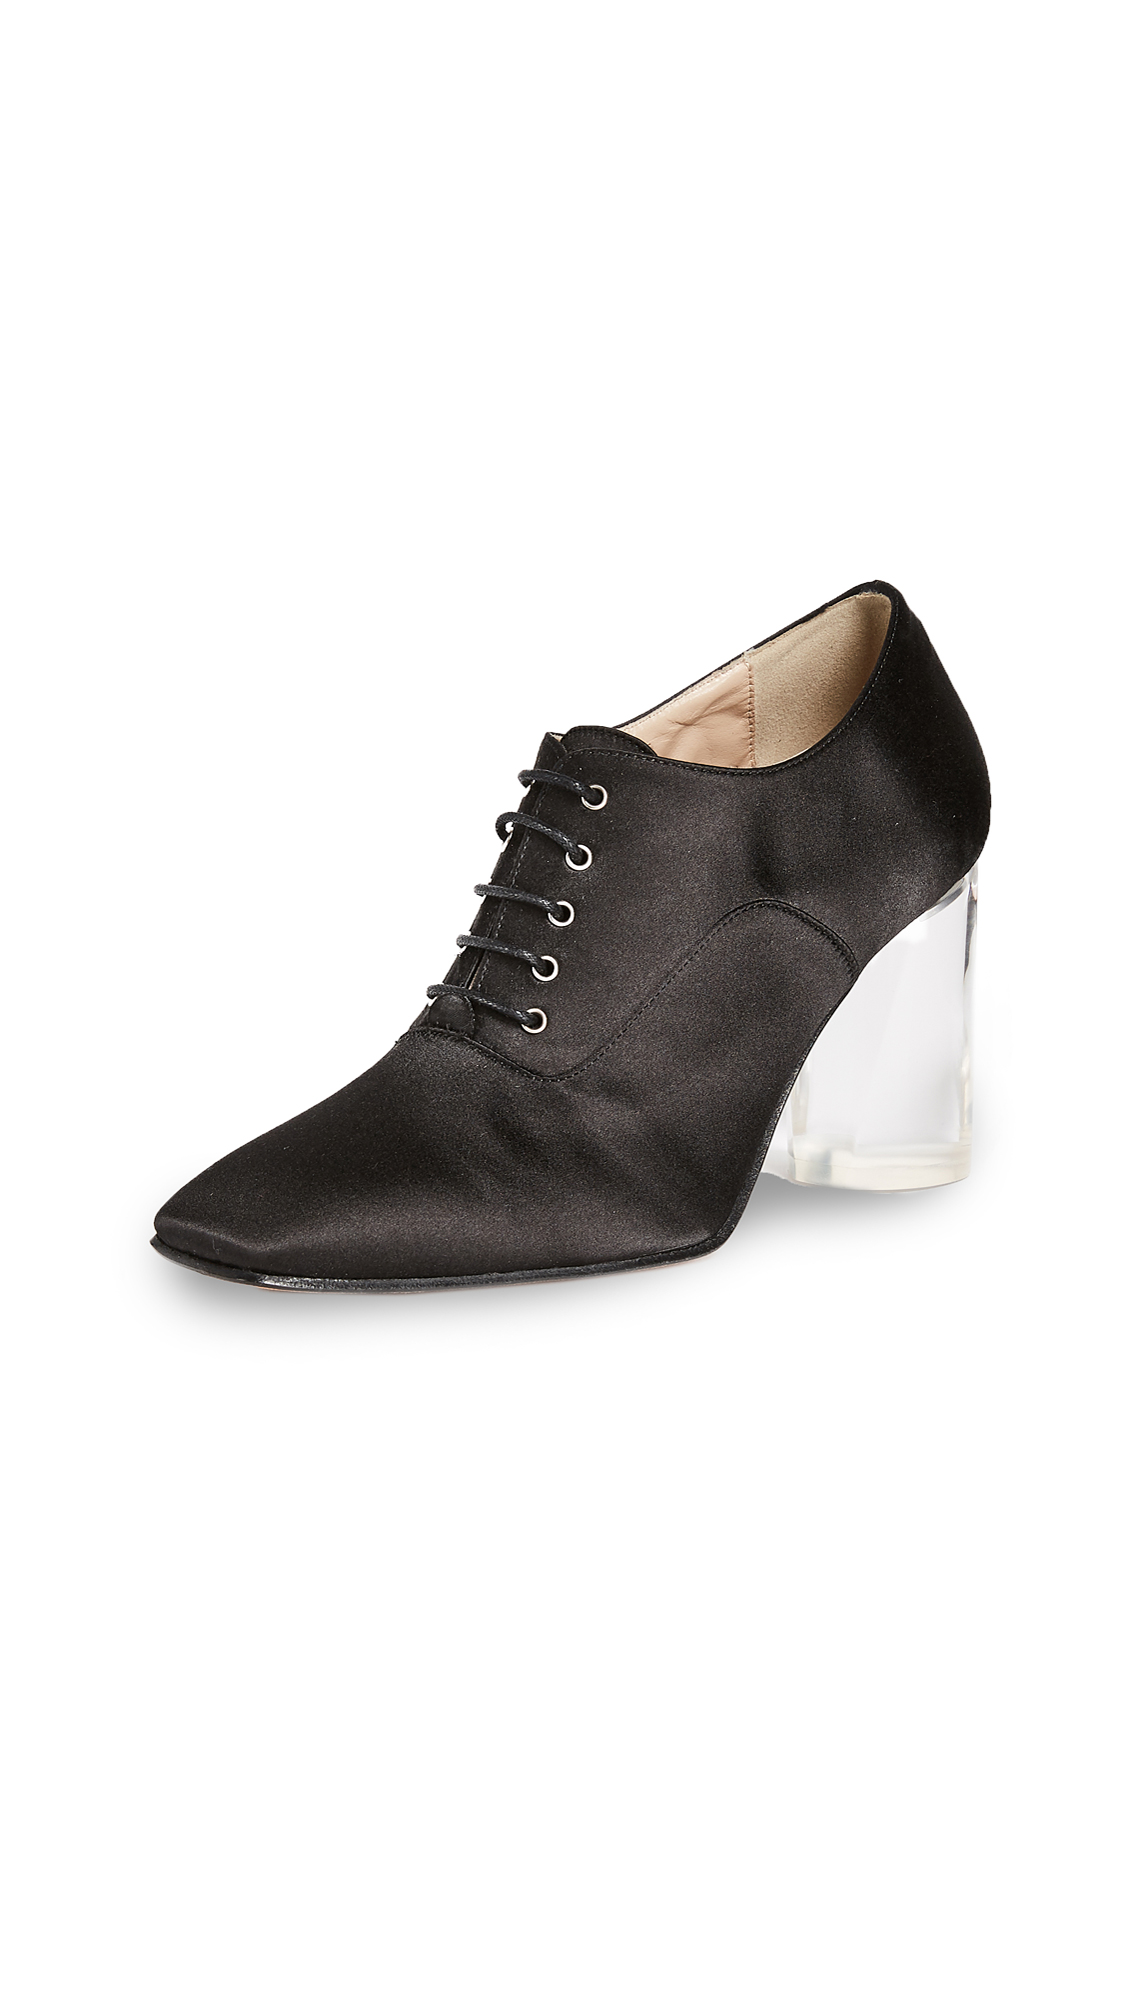 Maryam Nassir Zadeh Paris Lucite Oxford Pumps - Black